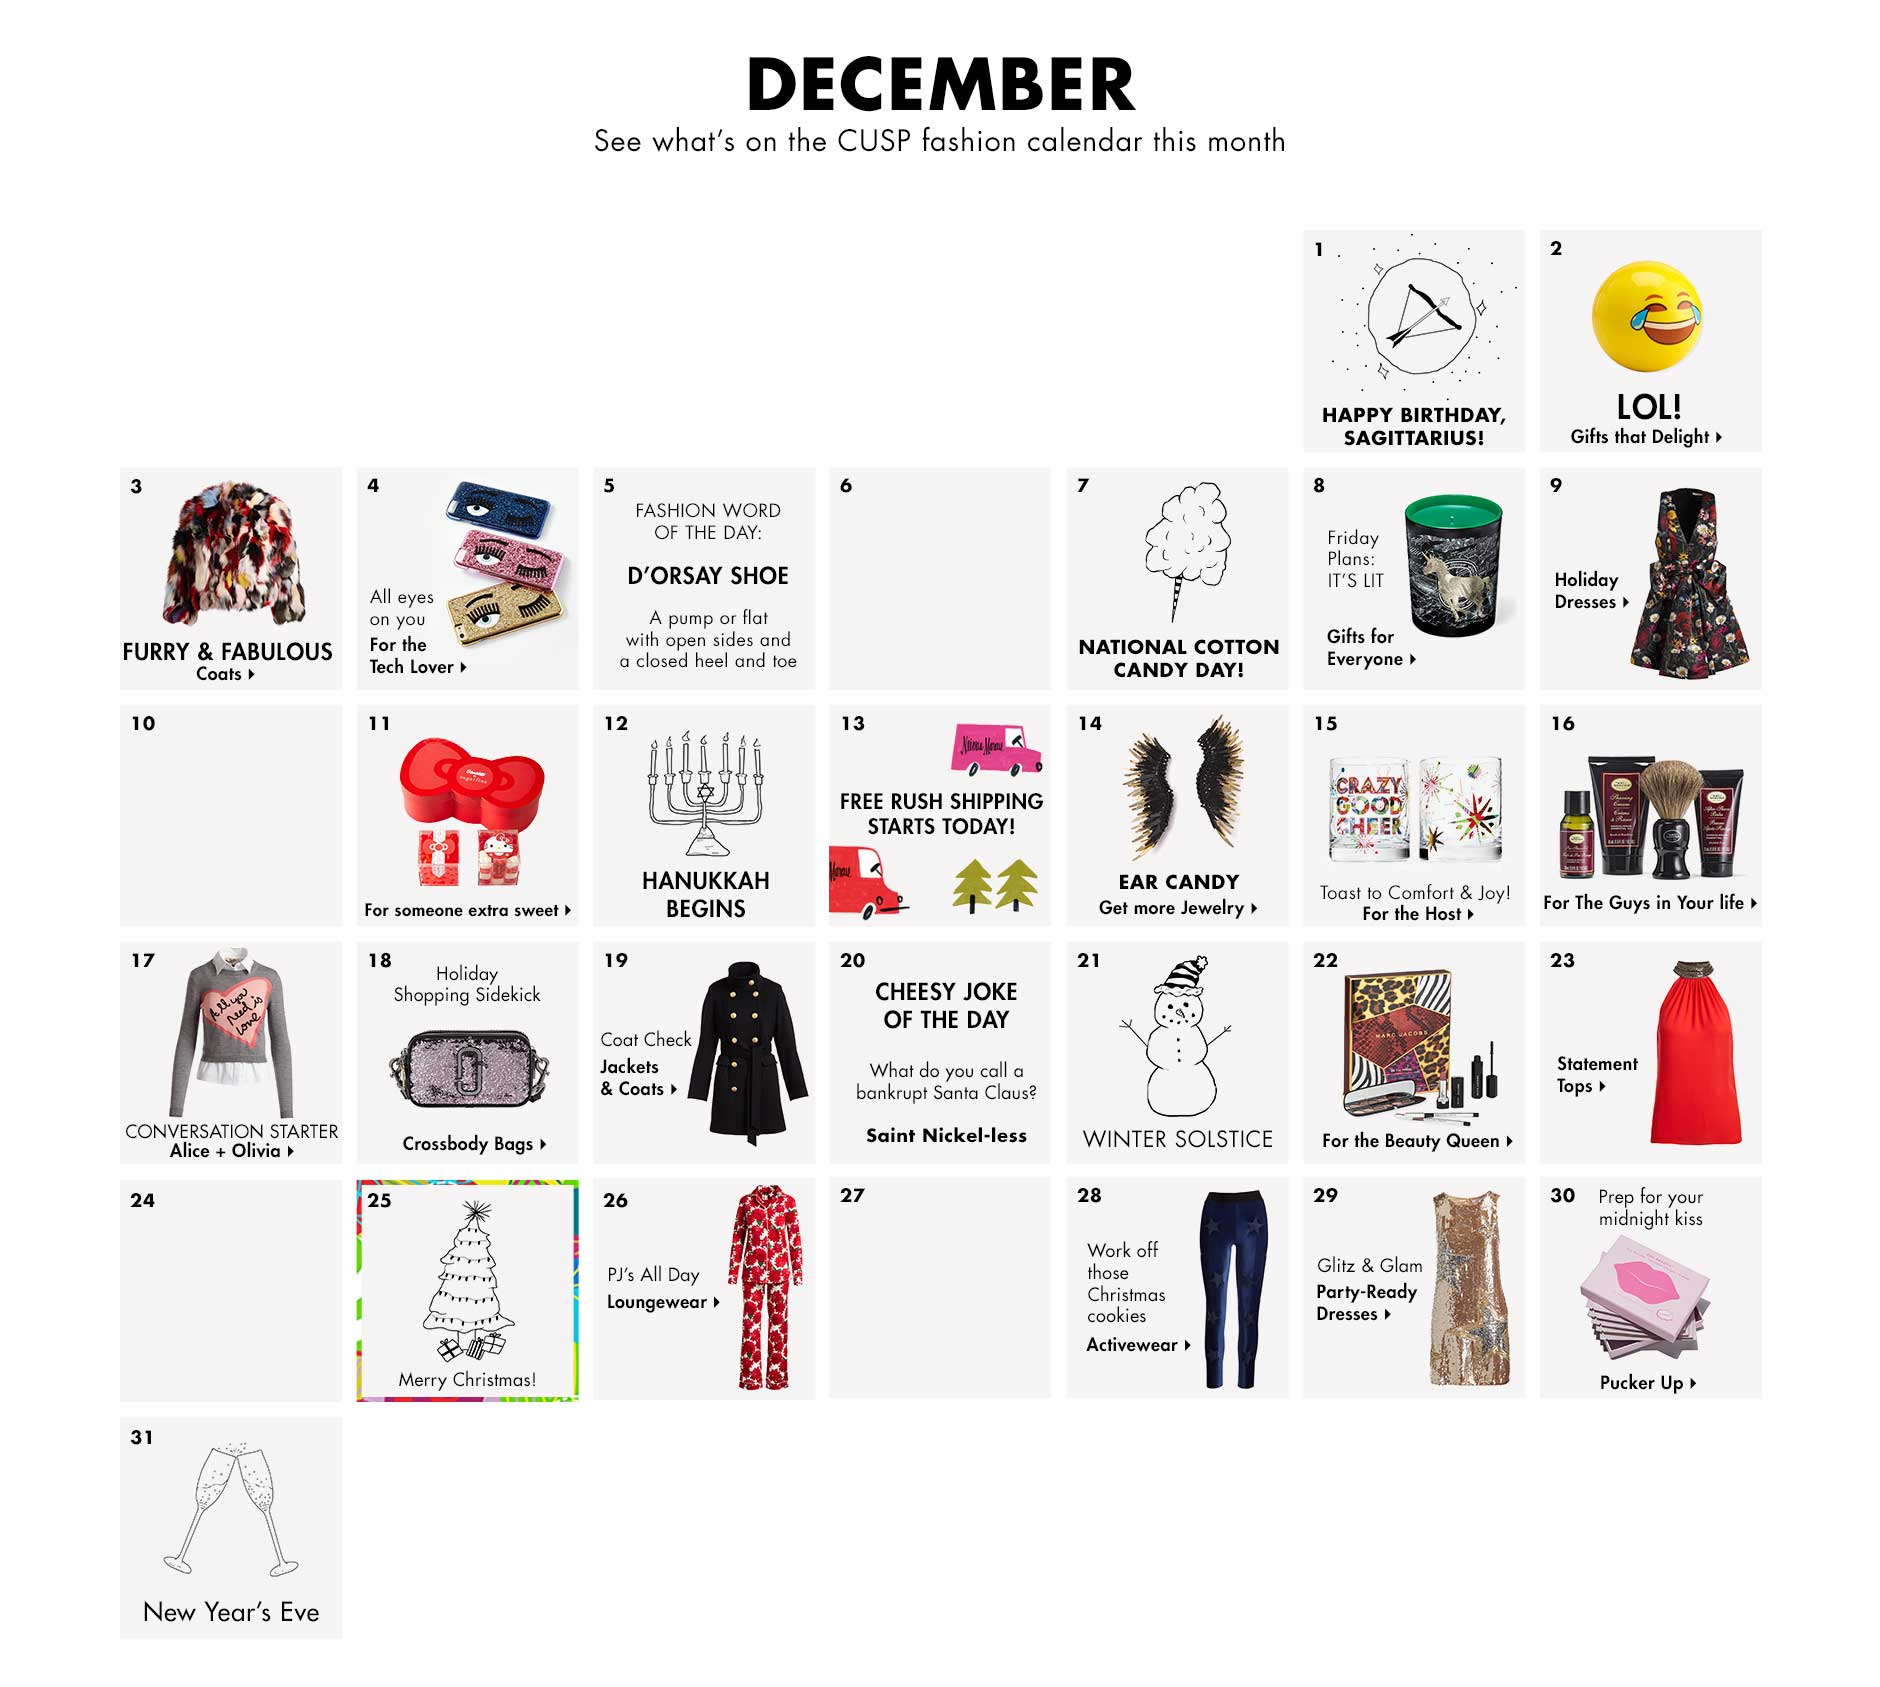 December - See what's on the CUSP fashion calendar this month